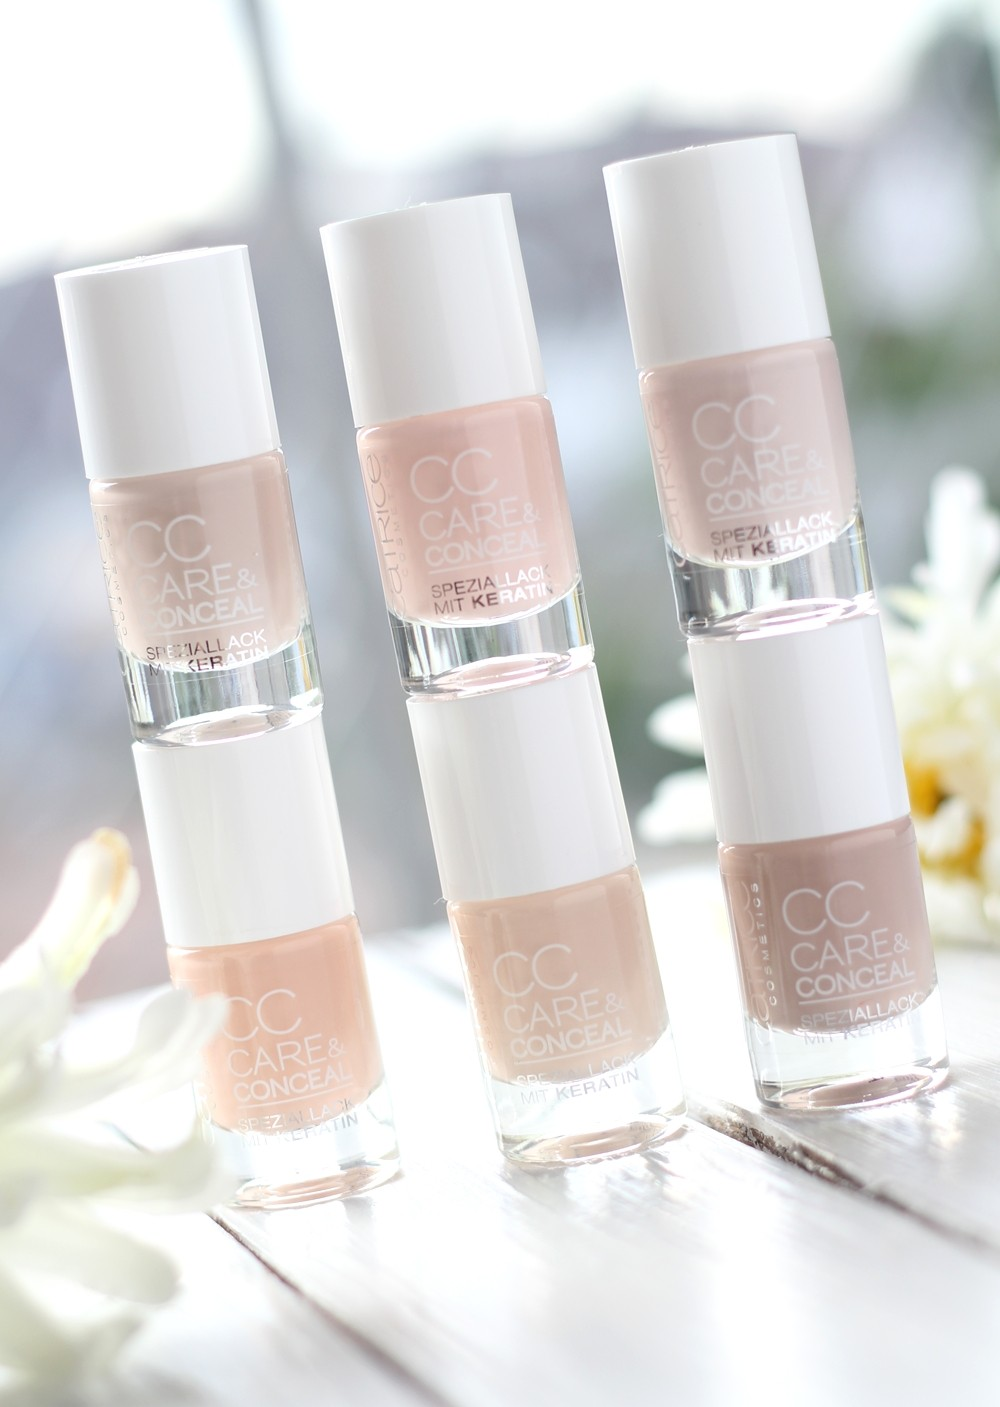 Catrice CC Care and Concealer Nagellack Nude